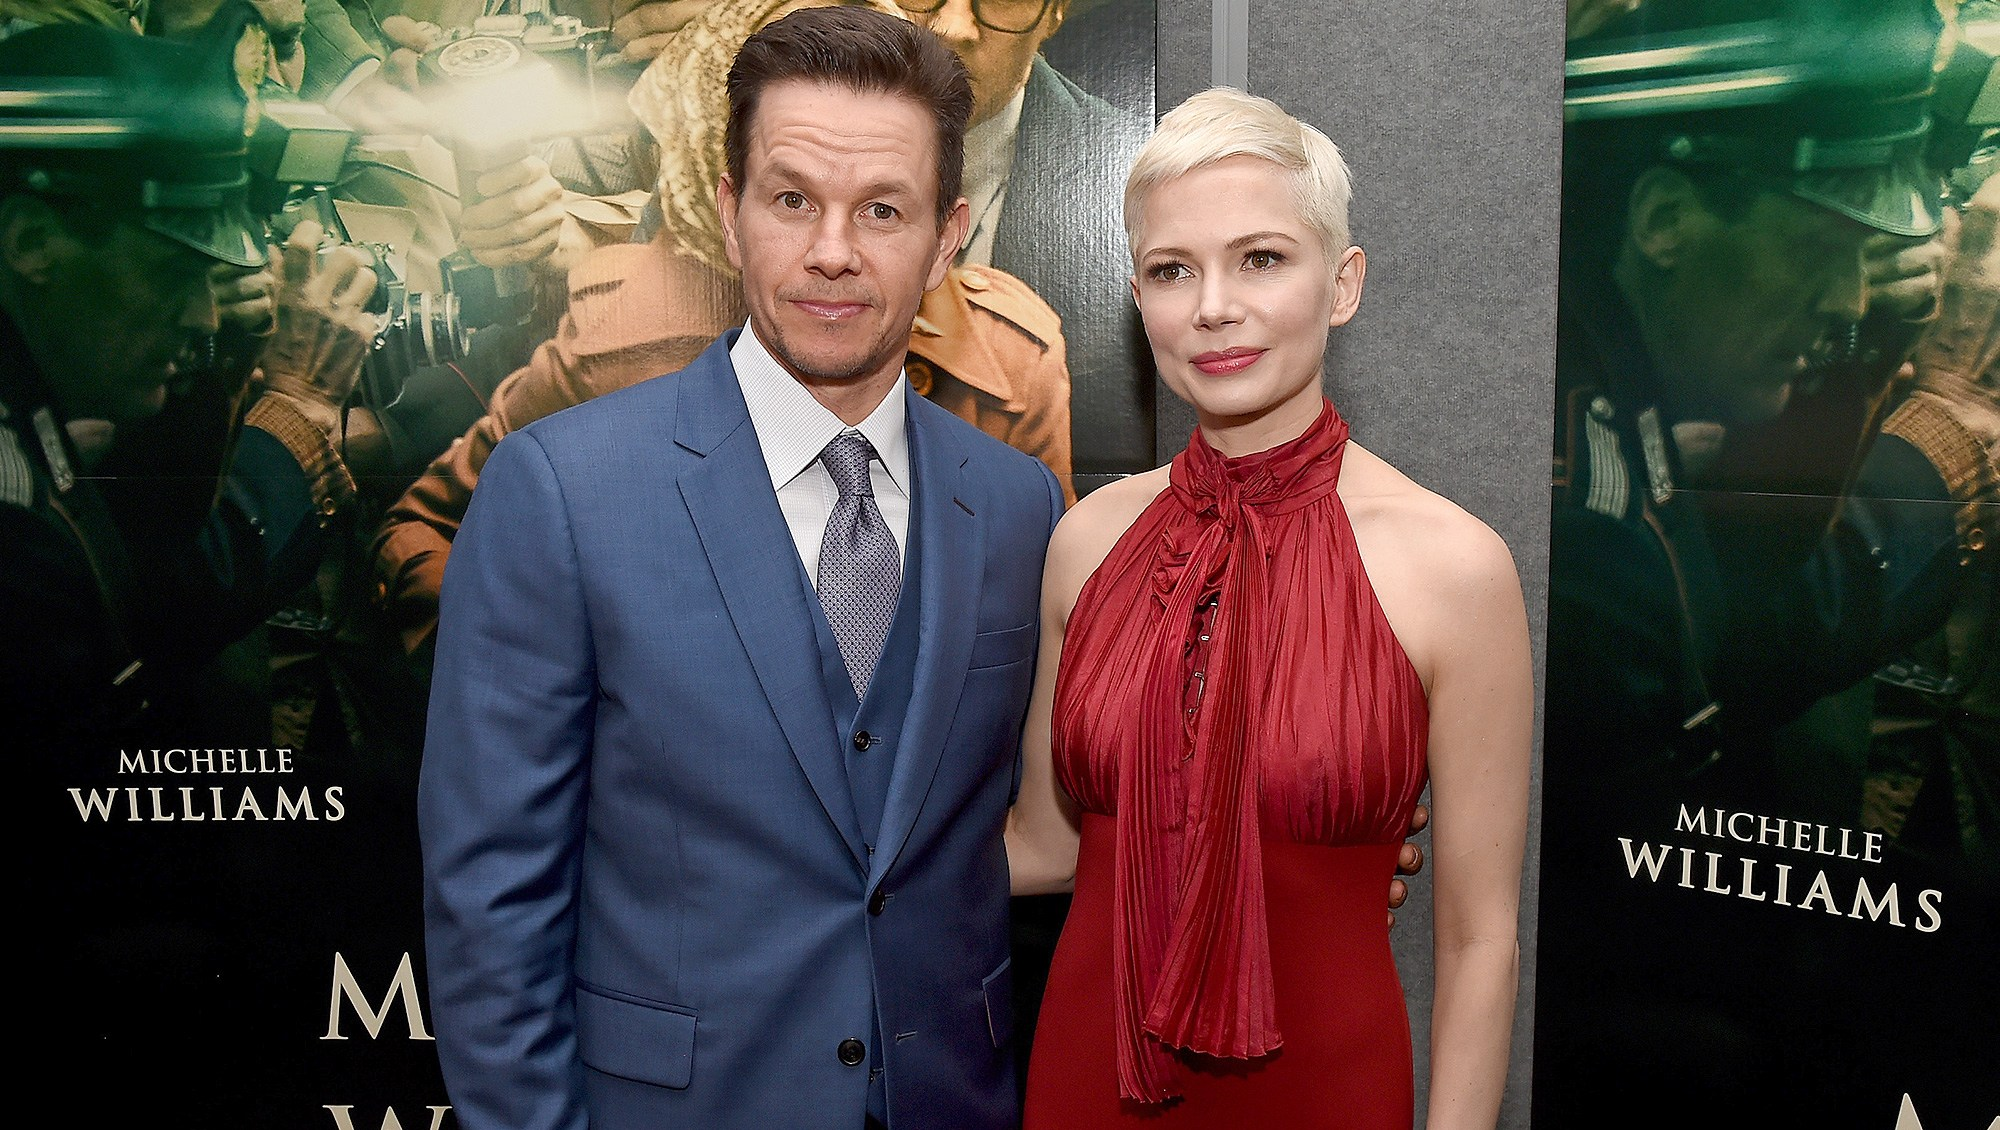 Mark Wahlberg, Michelle Williams, Time's Up, All the Money in the World, Reshoot